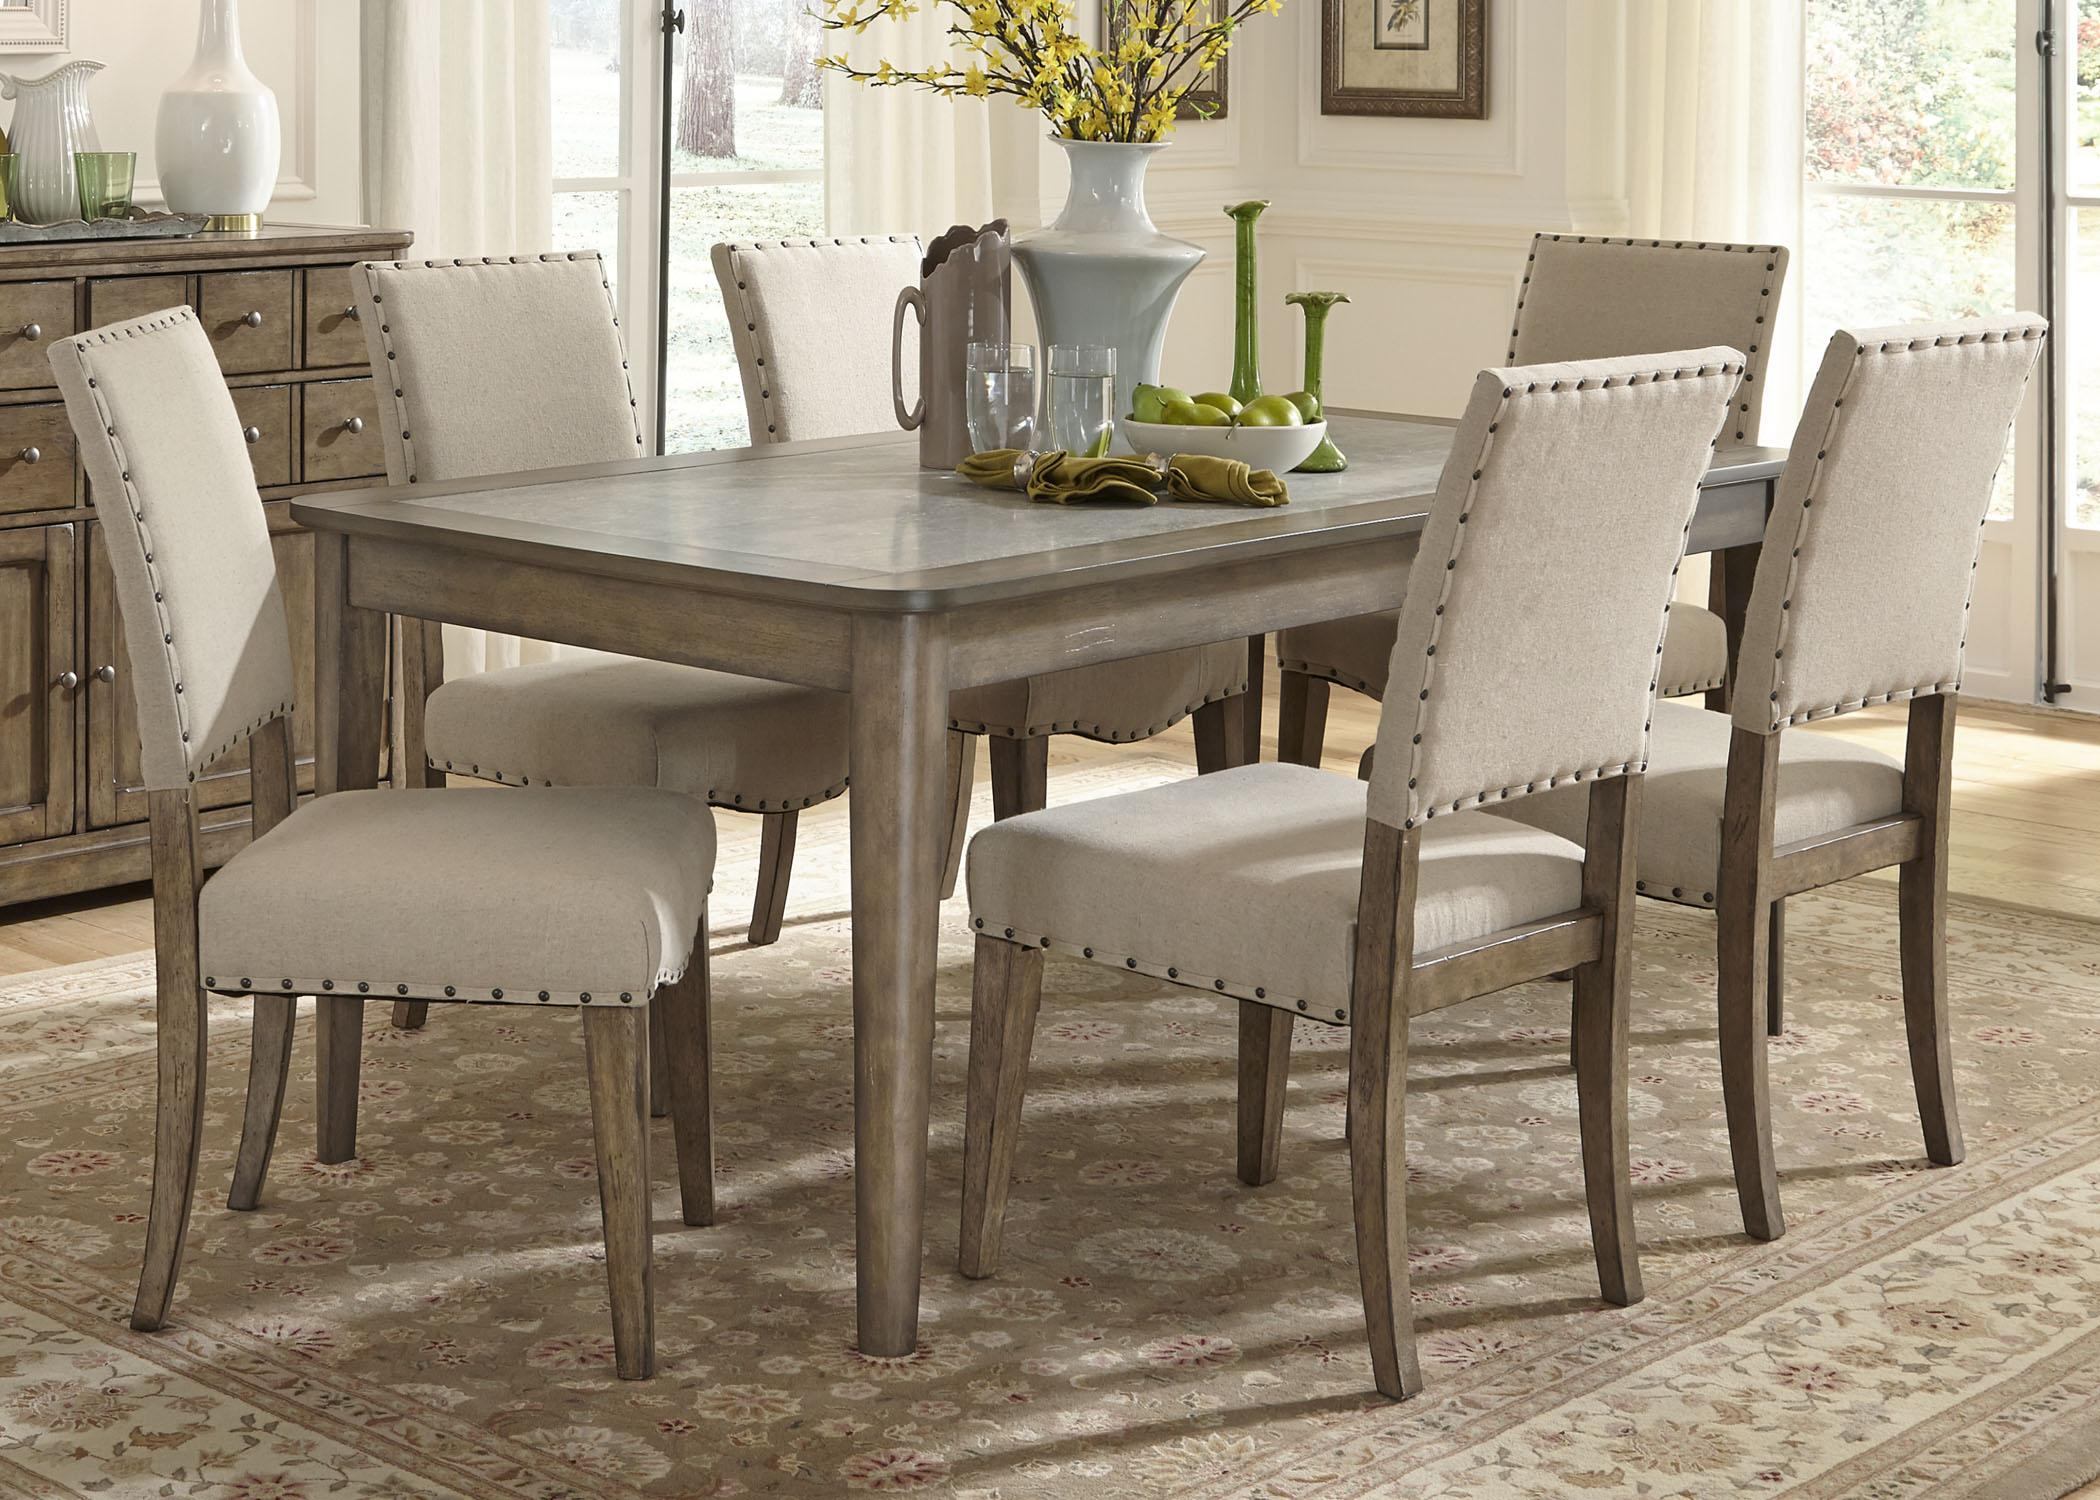 Casual Rustic 7 Piece Dining Table And Chairs Set